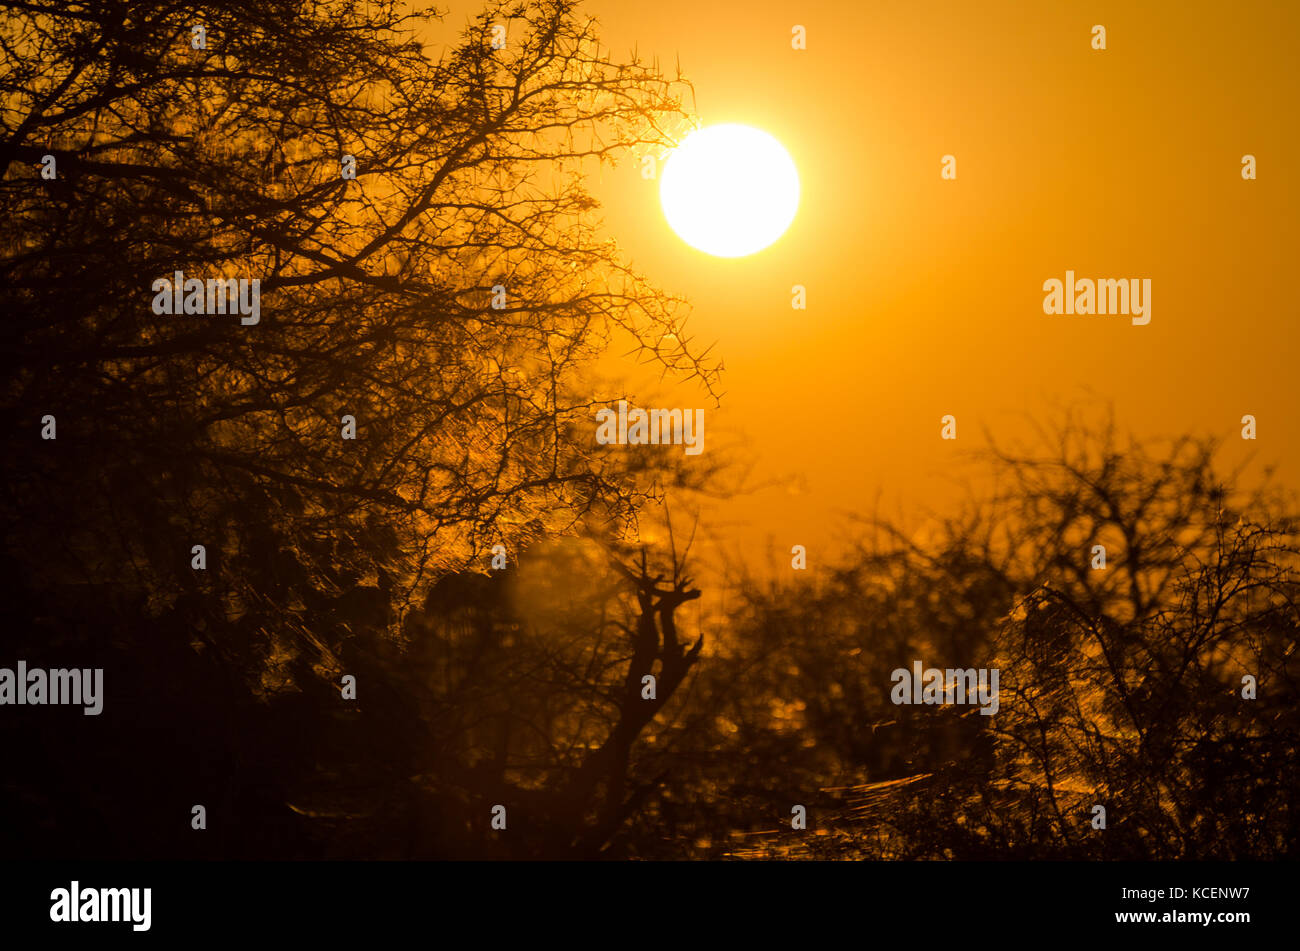 thorny trees stock photos amp thorny trees stock images alamy